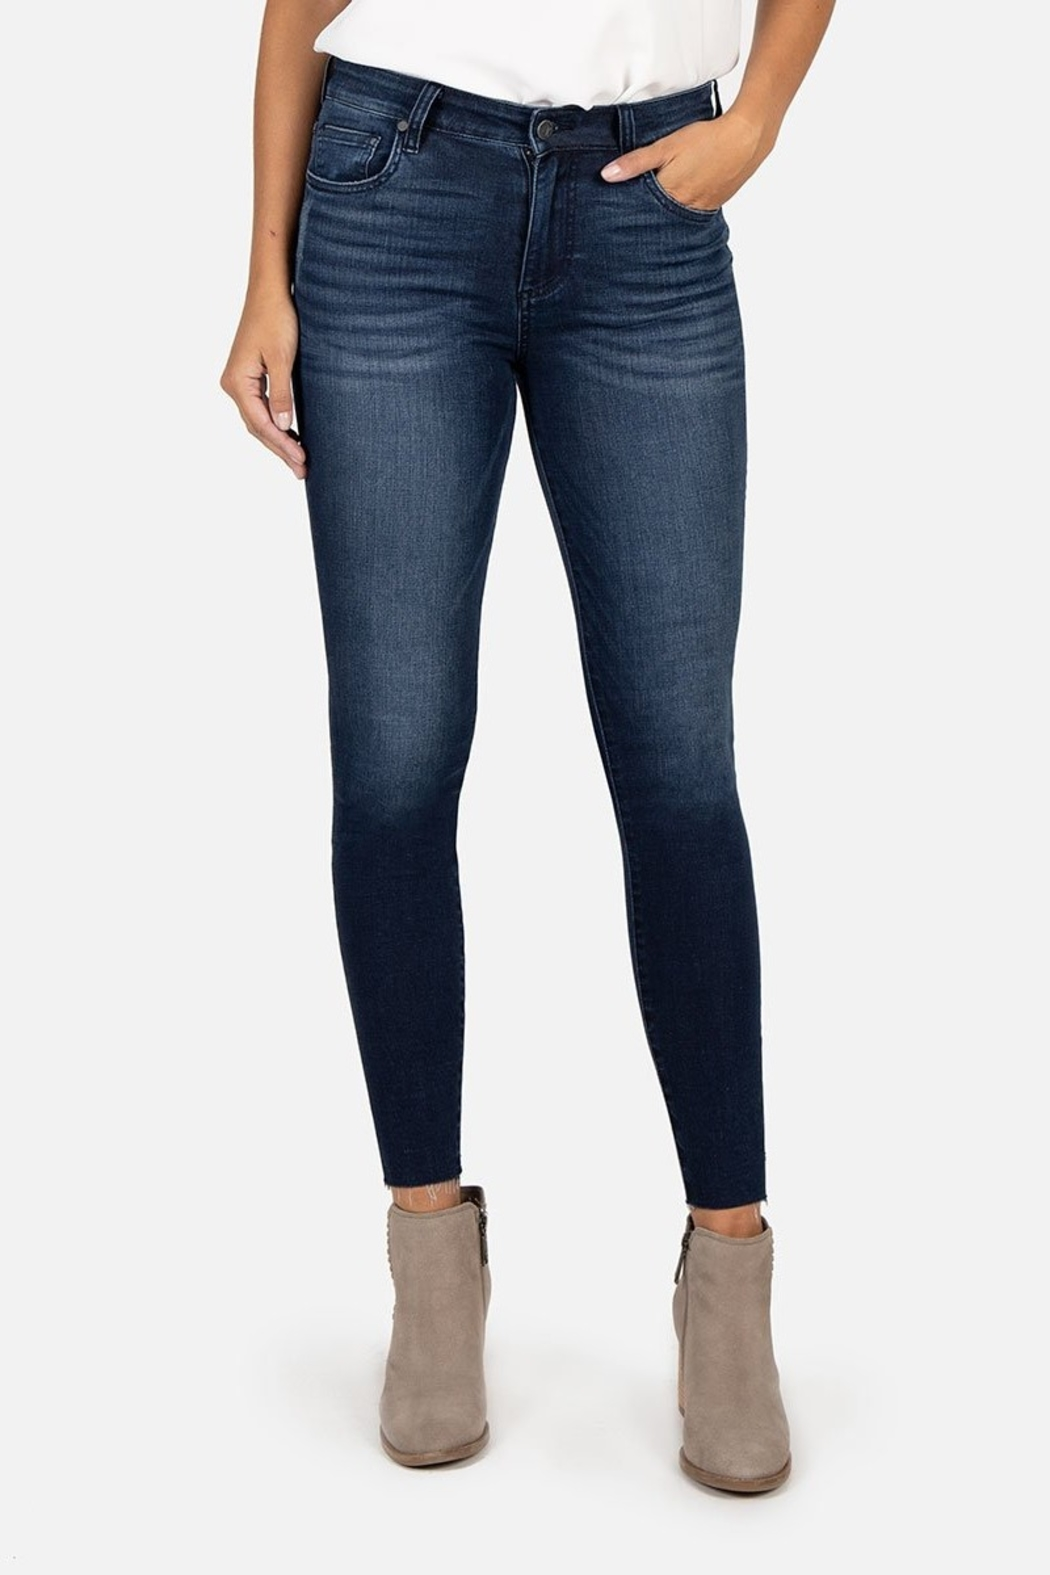 Kut from the Kloth CONNIE HIGH RISE ANKLE SKINNY - Main Image